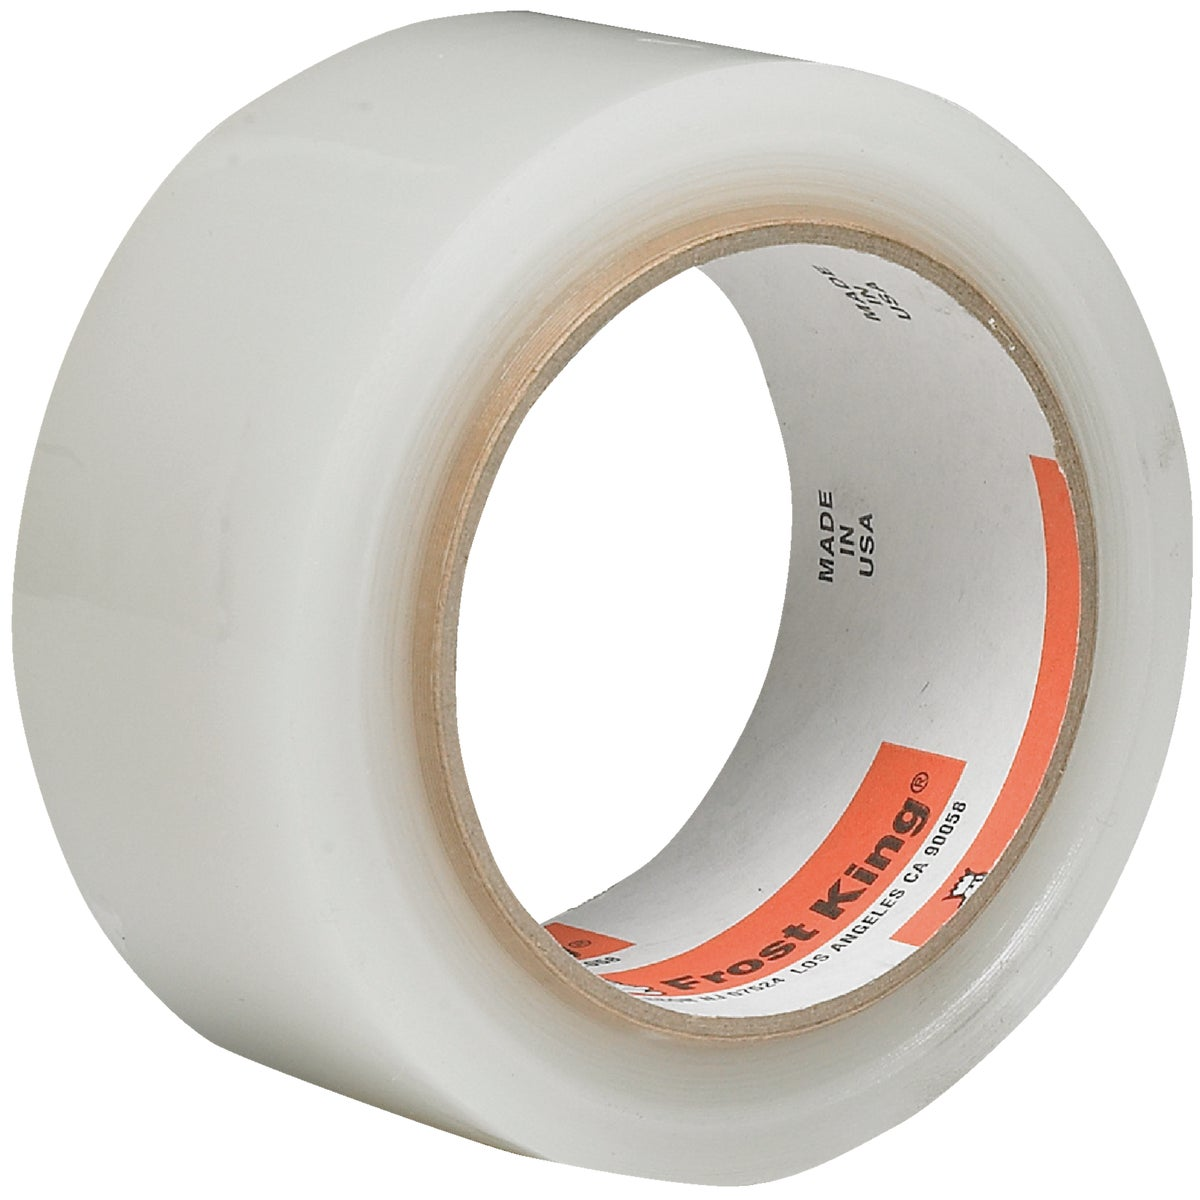 "2""X100' WEATHERSEAL TAPE - T96HDI by Thermwell Prods Co"